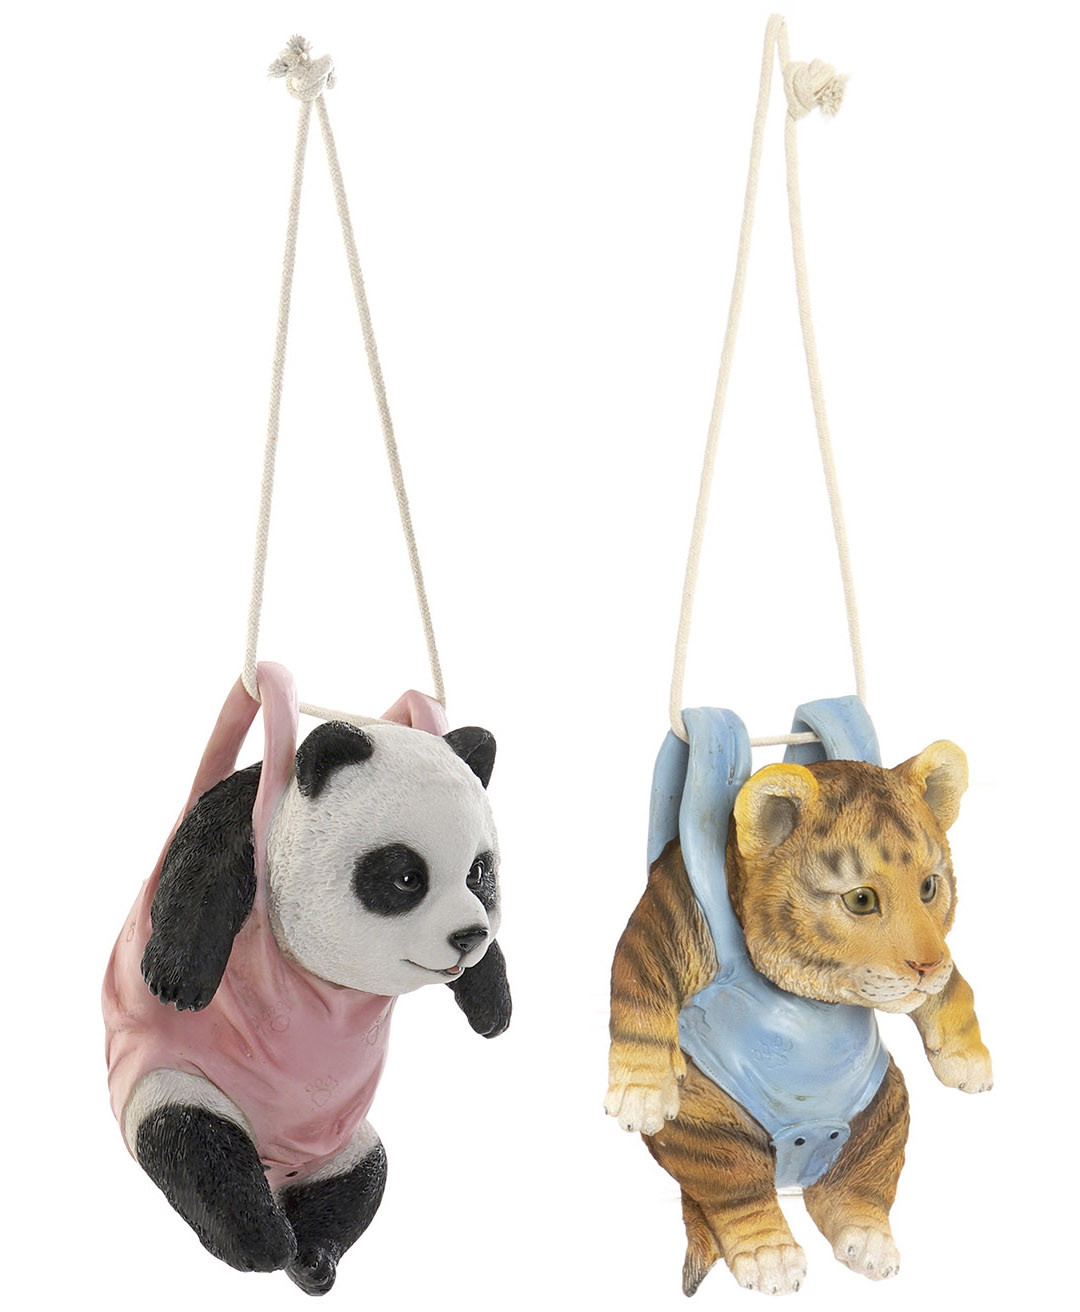 Tiger/Panda Figure Decorative Pendant Infant of Resin for Indoor/Outdoor. Animal design and Realistic 16X12,5X20 cm